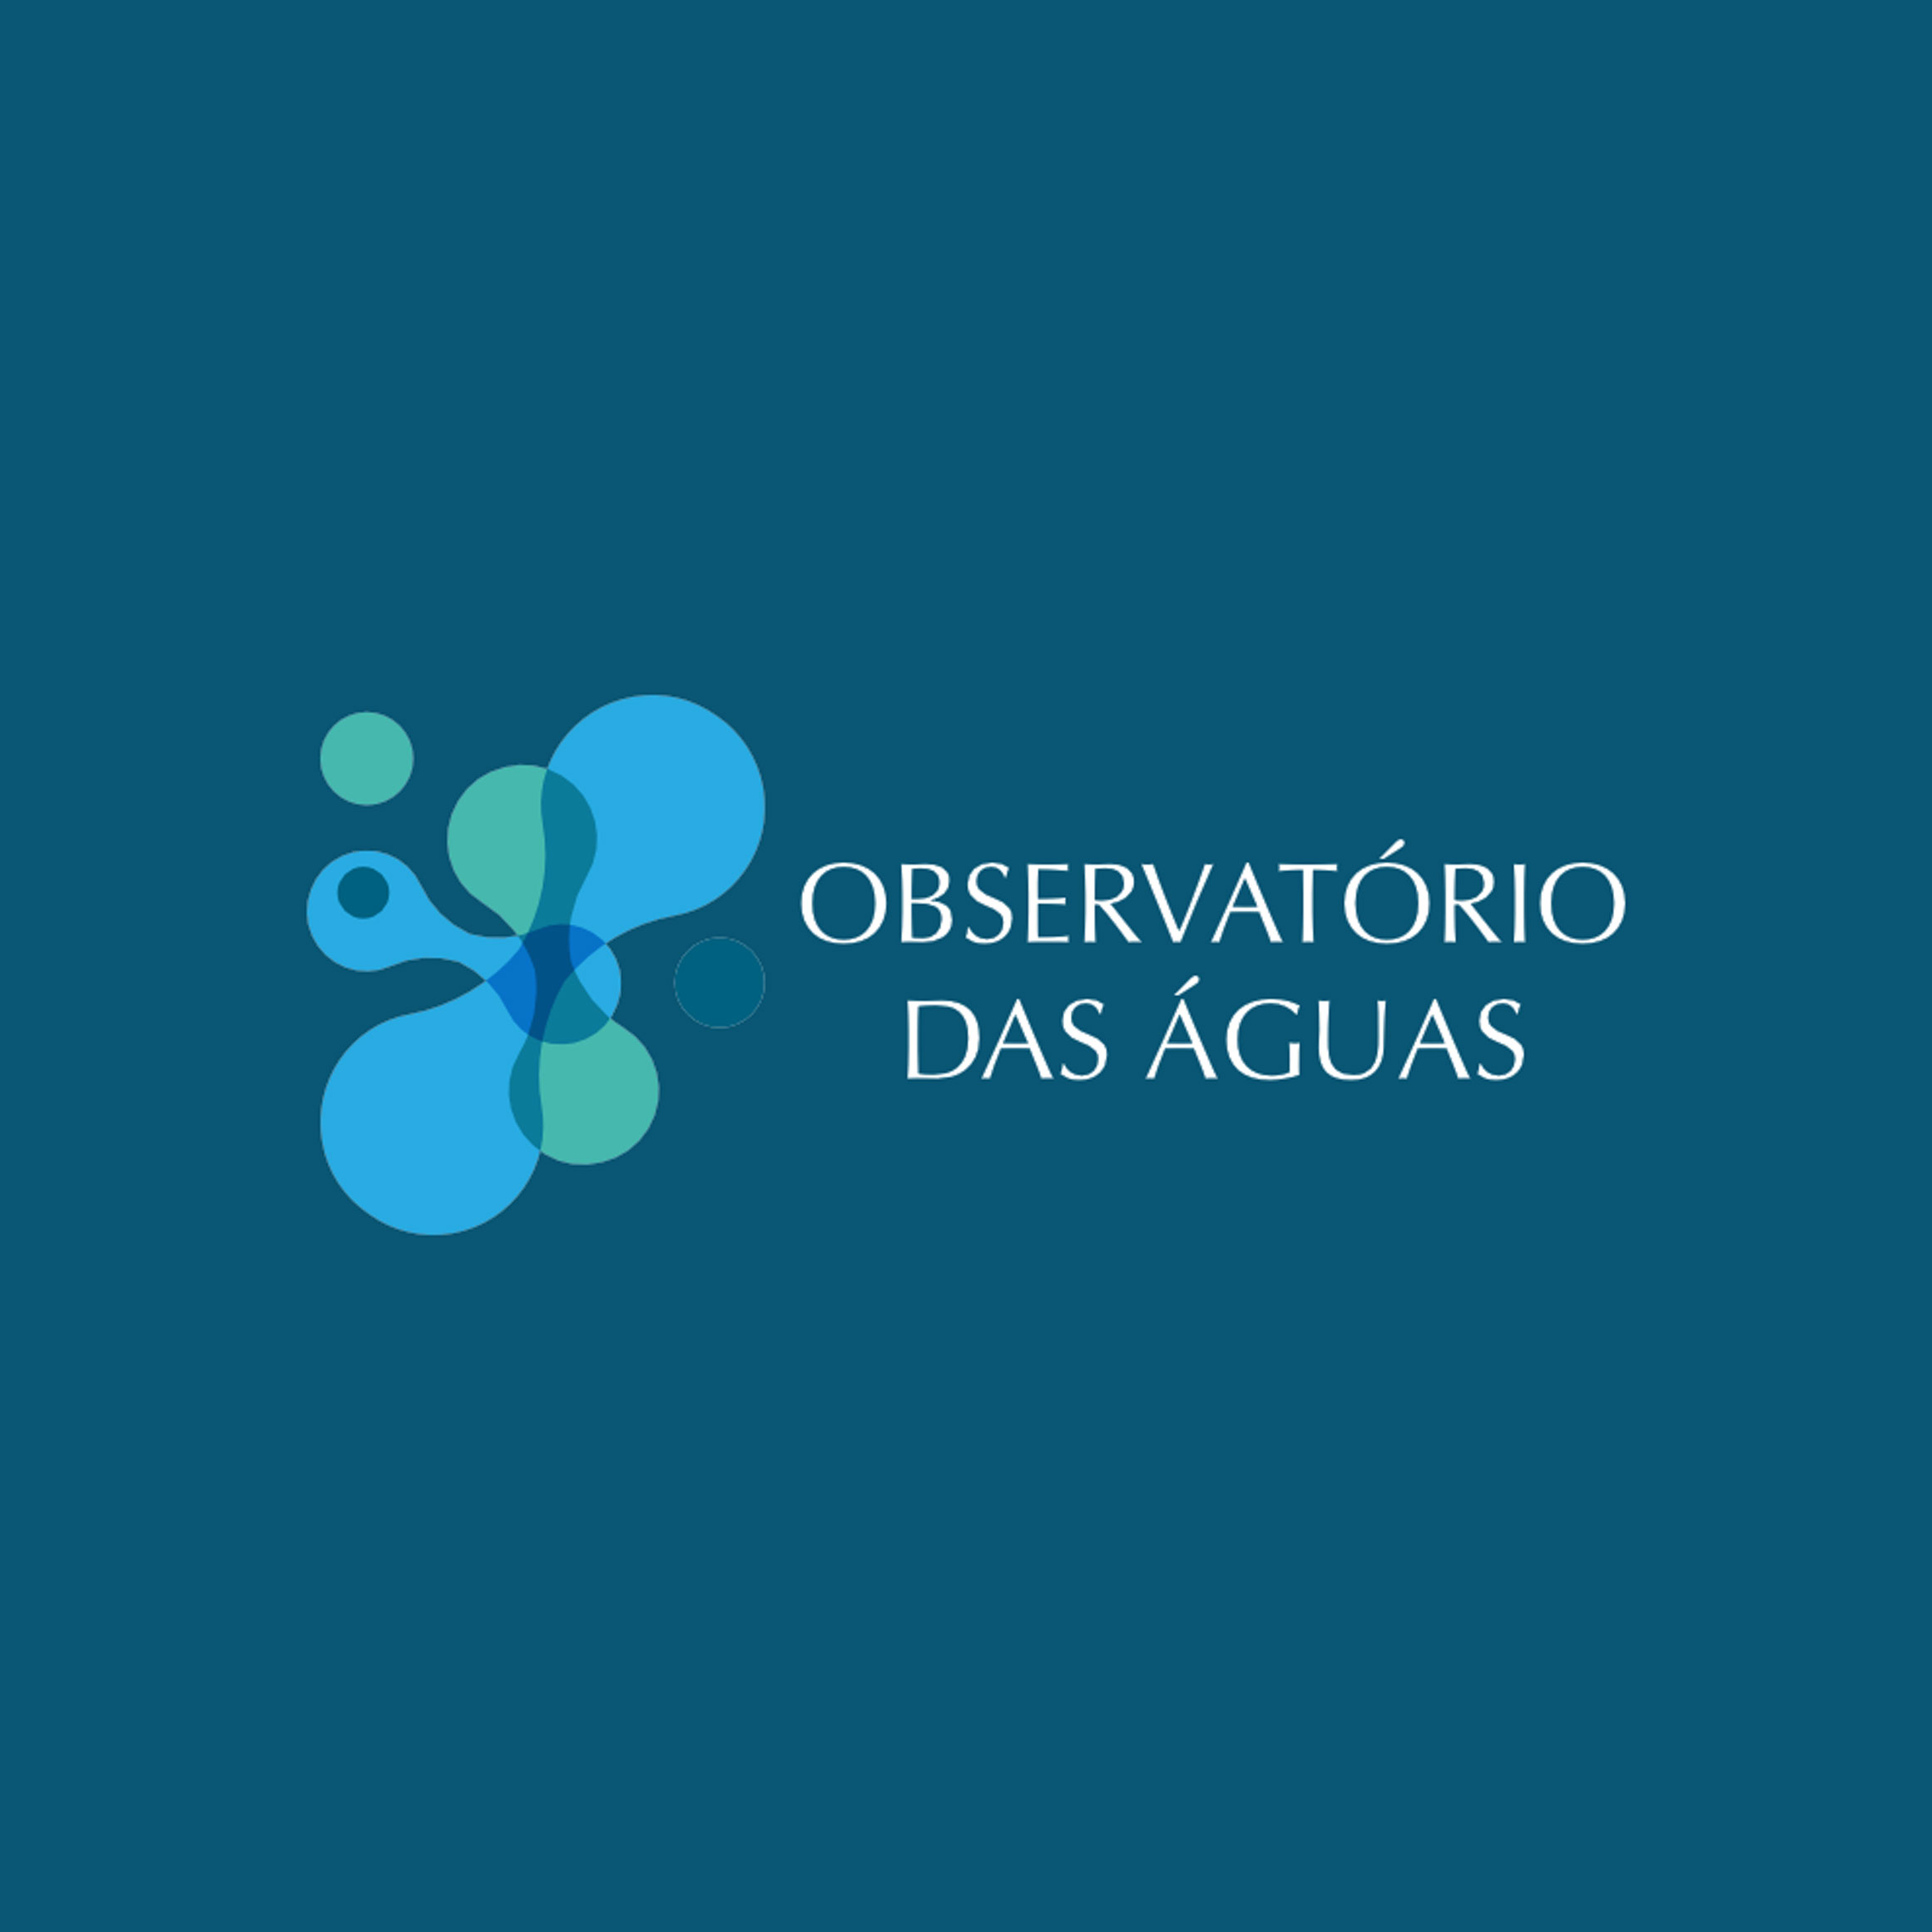 observatorio-das-águas-cover